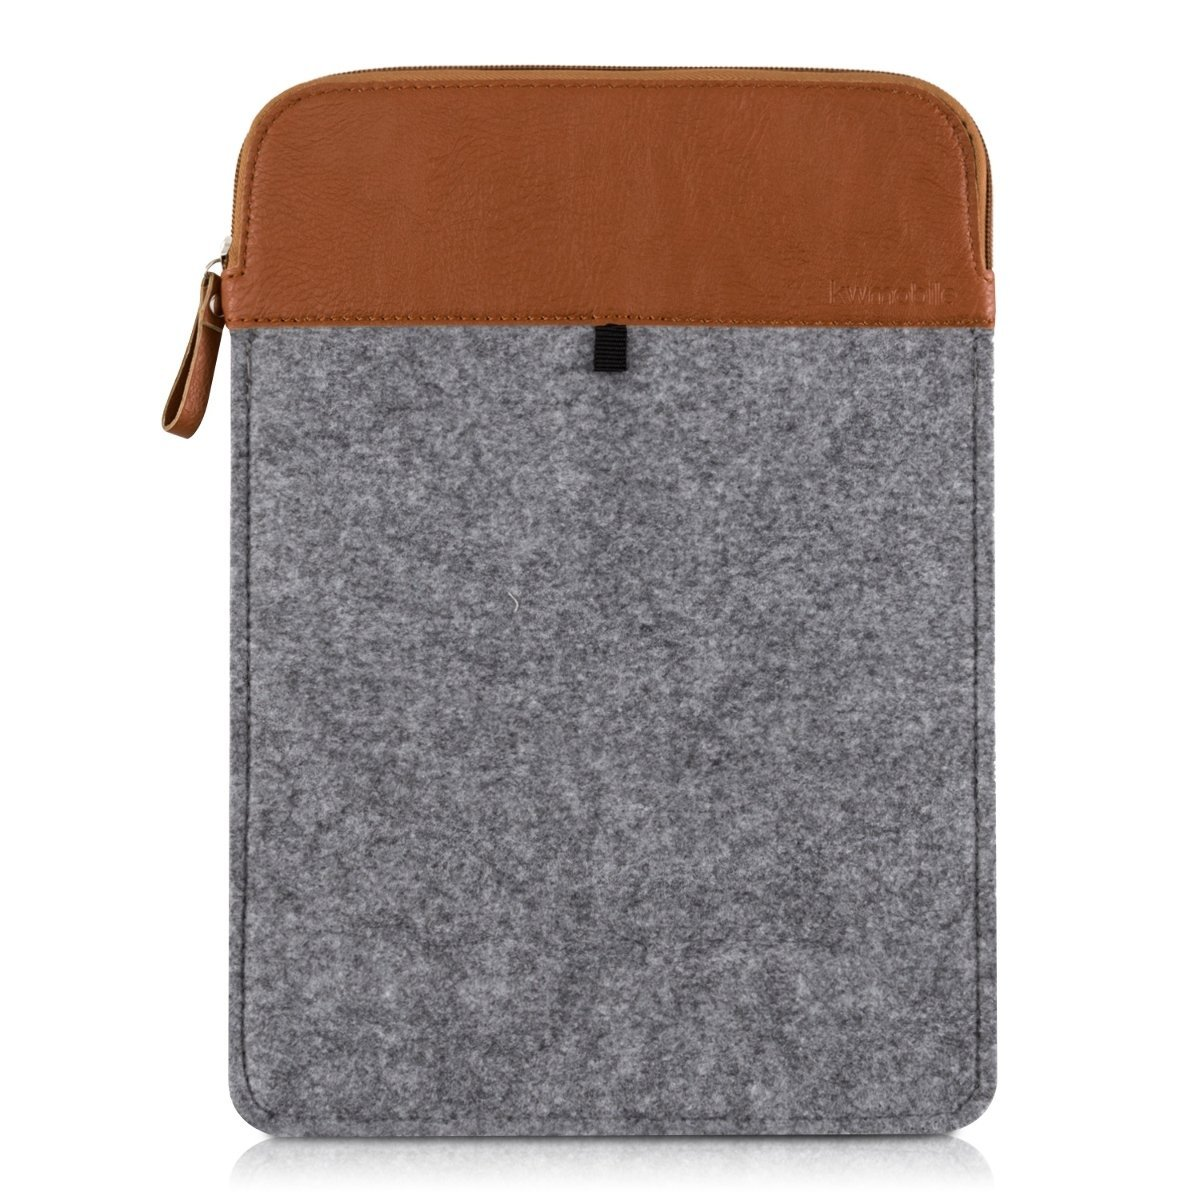 """kwmobile laptop felt case cover for 12,5"""" 13"""" 13,3"""" Laptop / Ultrabook - notebook protective cover in grey brown Inner dimensions: approx. 36 x 26 cm"""